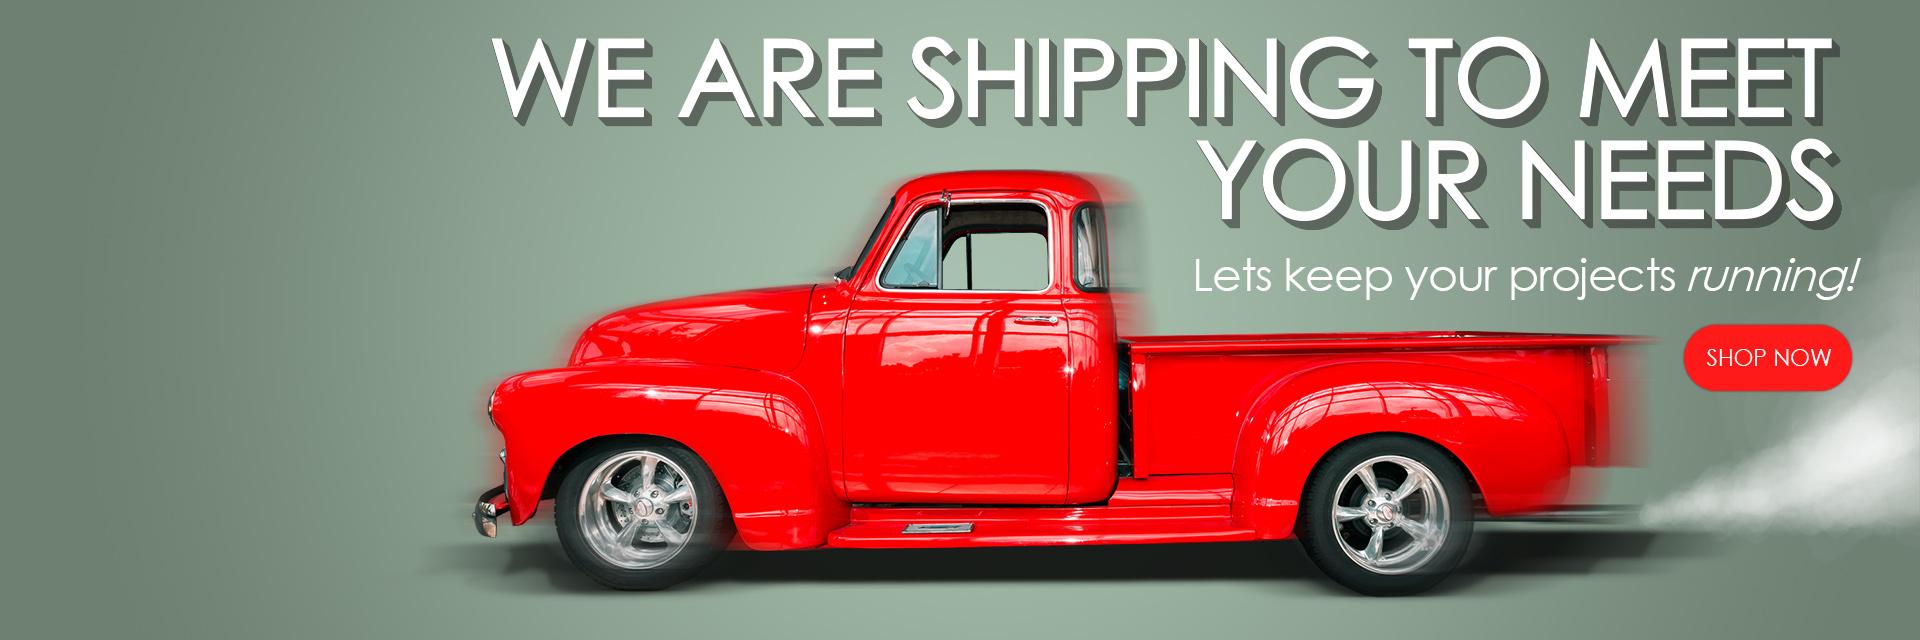 We are shipping to meet your needs